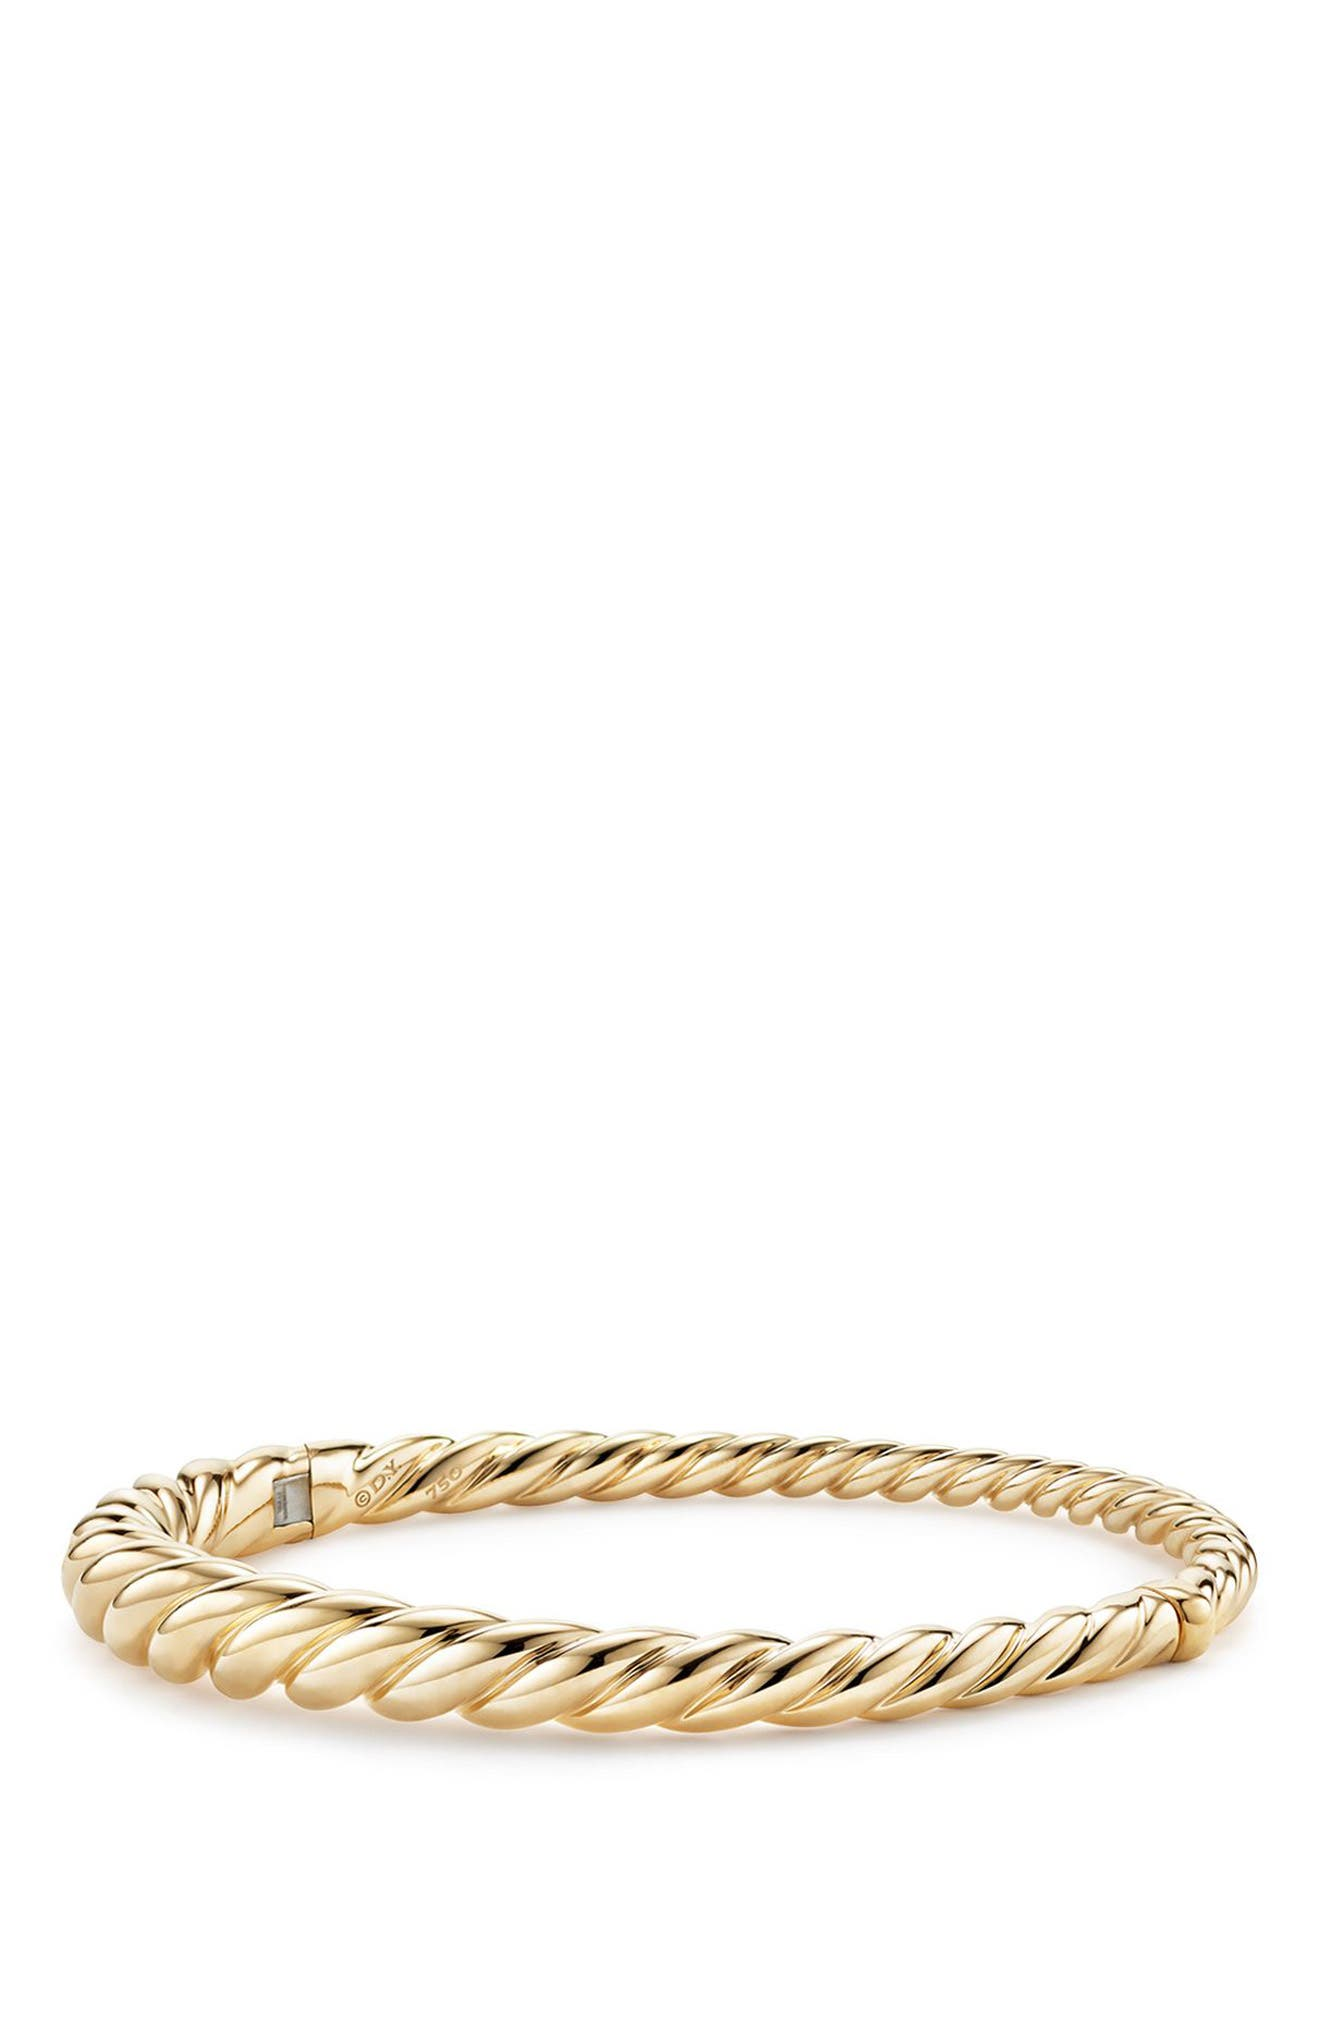 Pure Form Cable Bracelet in 18K Gold, 6mm,                         Main,                         color, YELLOW GOLD